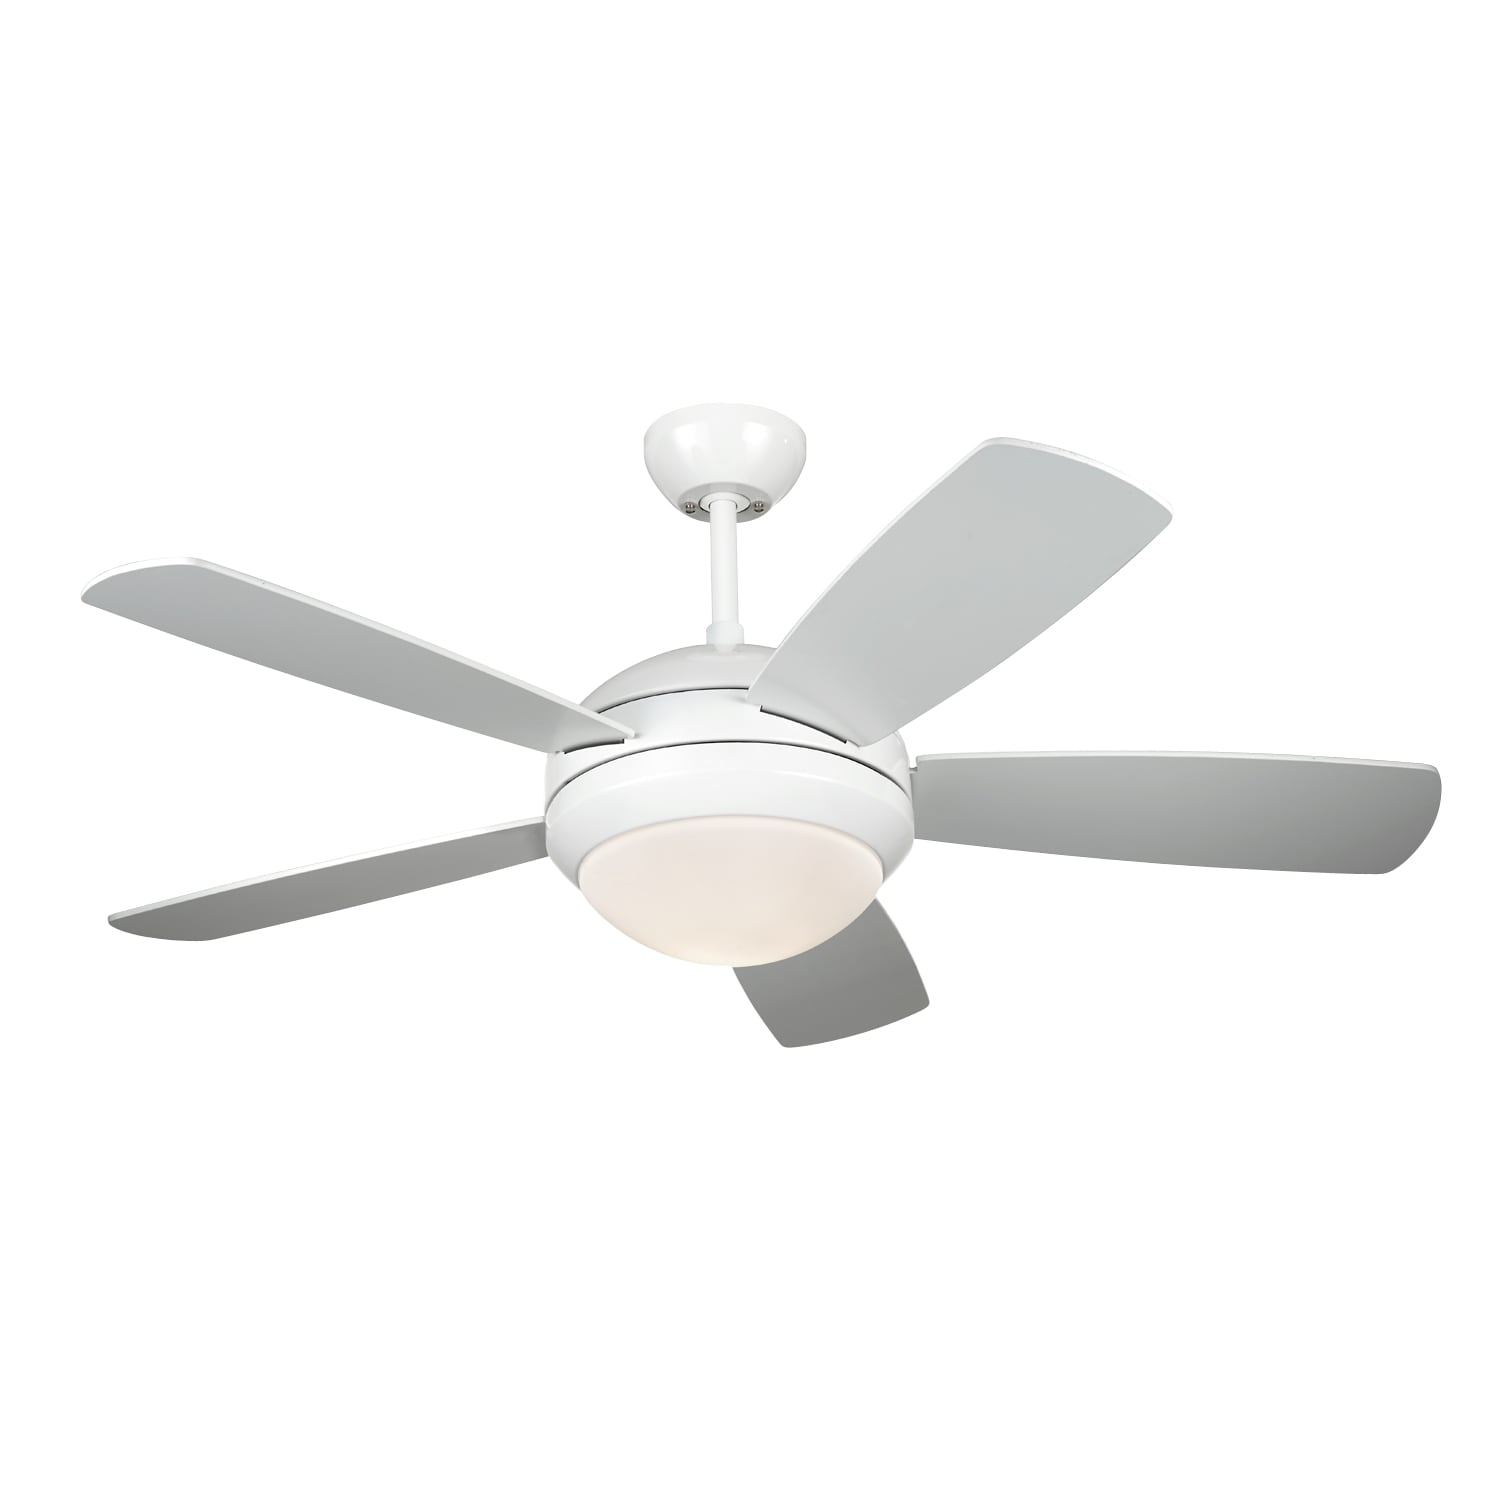 indoor bn depot home fans inch kit in brushed fan bay with ceilings the p lights sinclair hampton nickel light ceiling